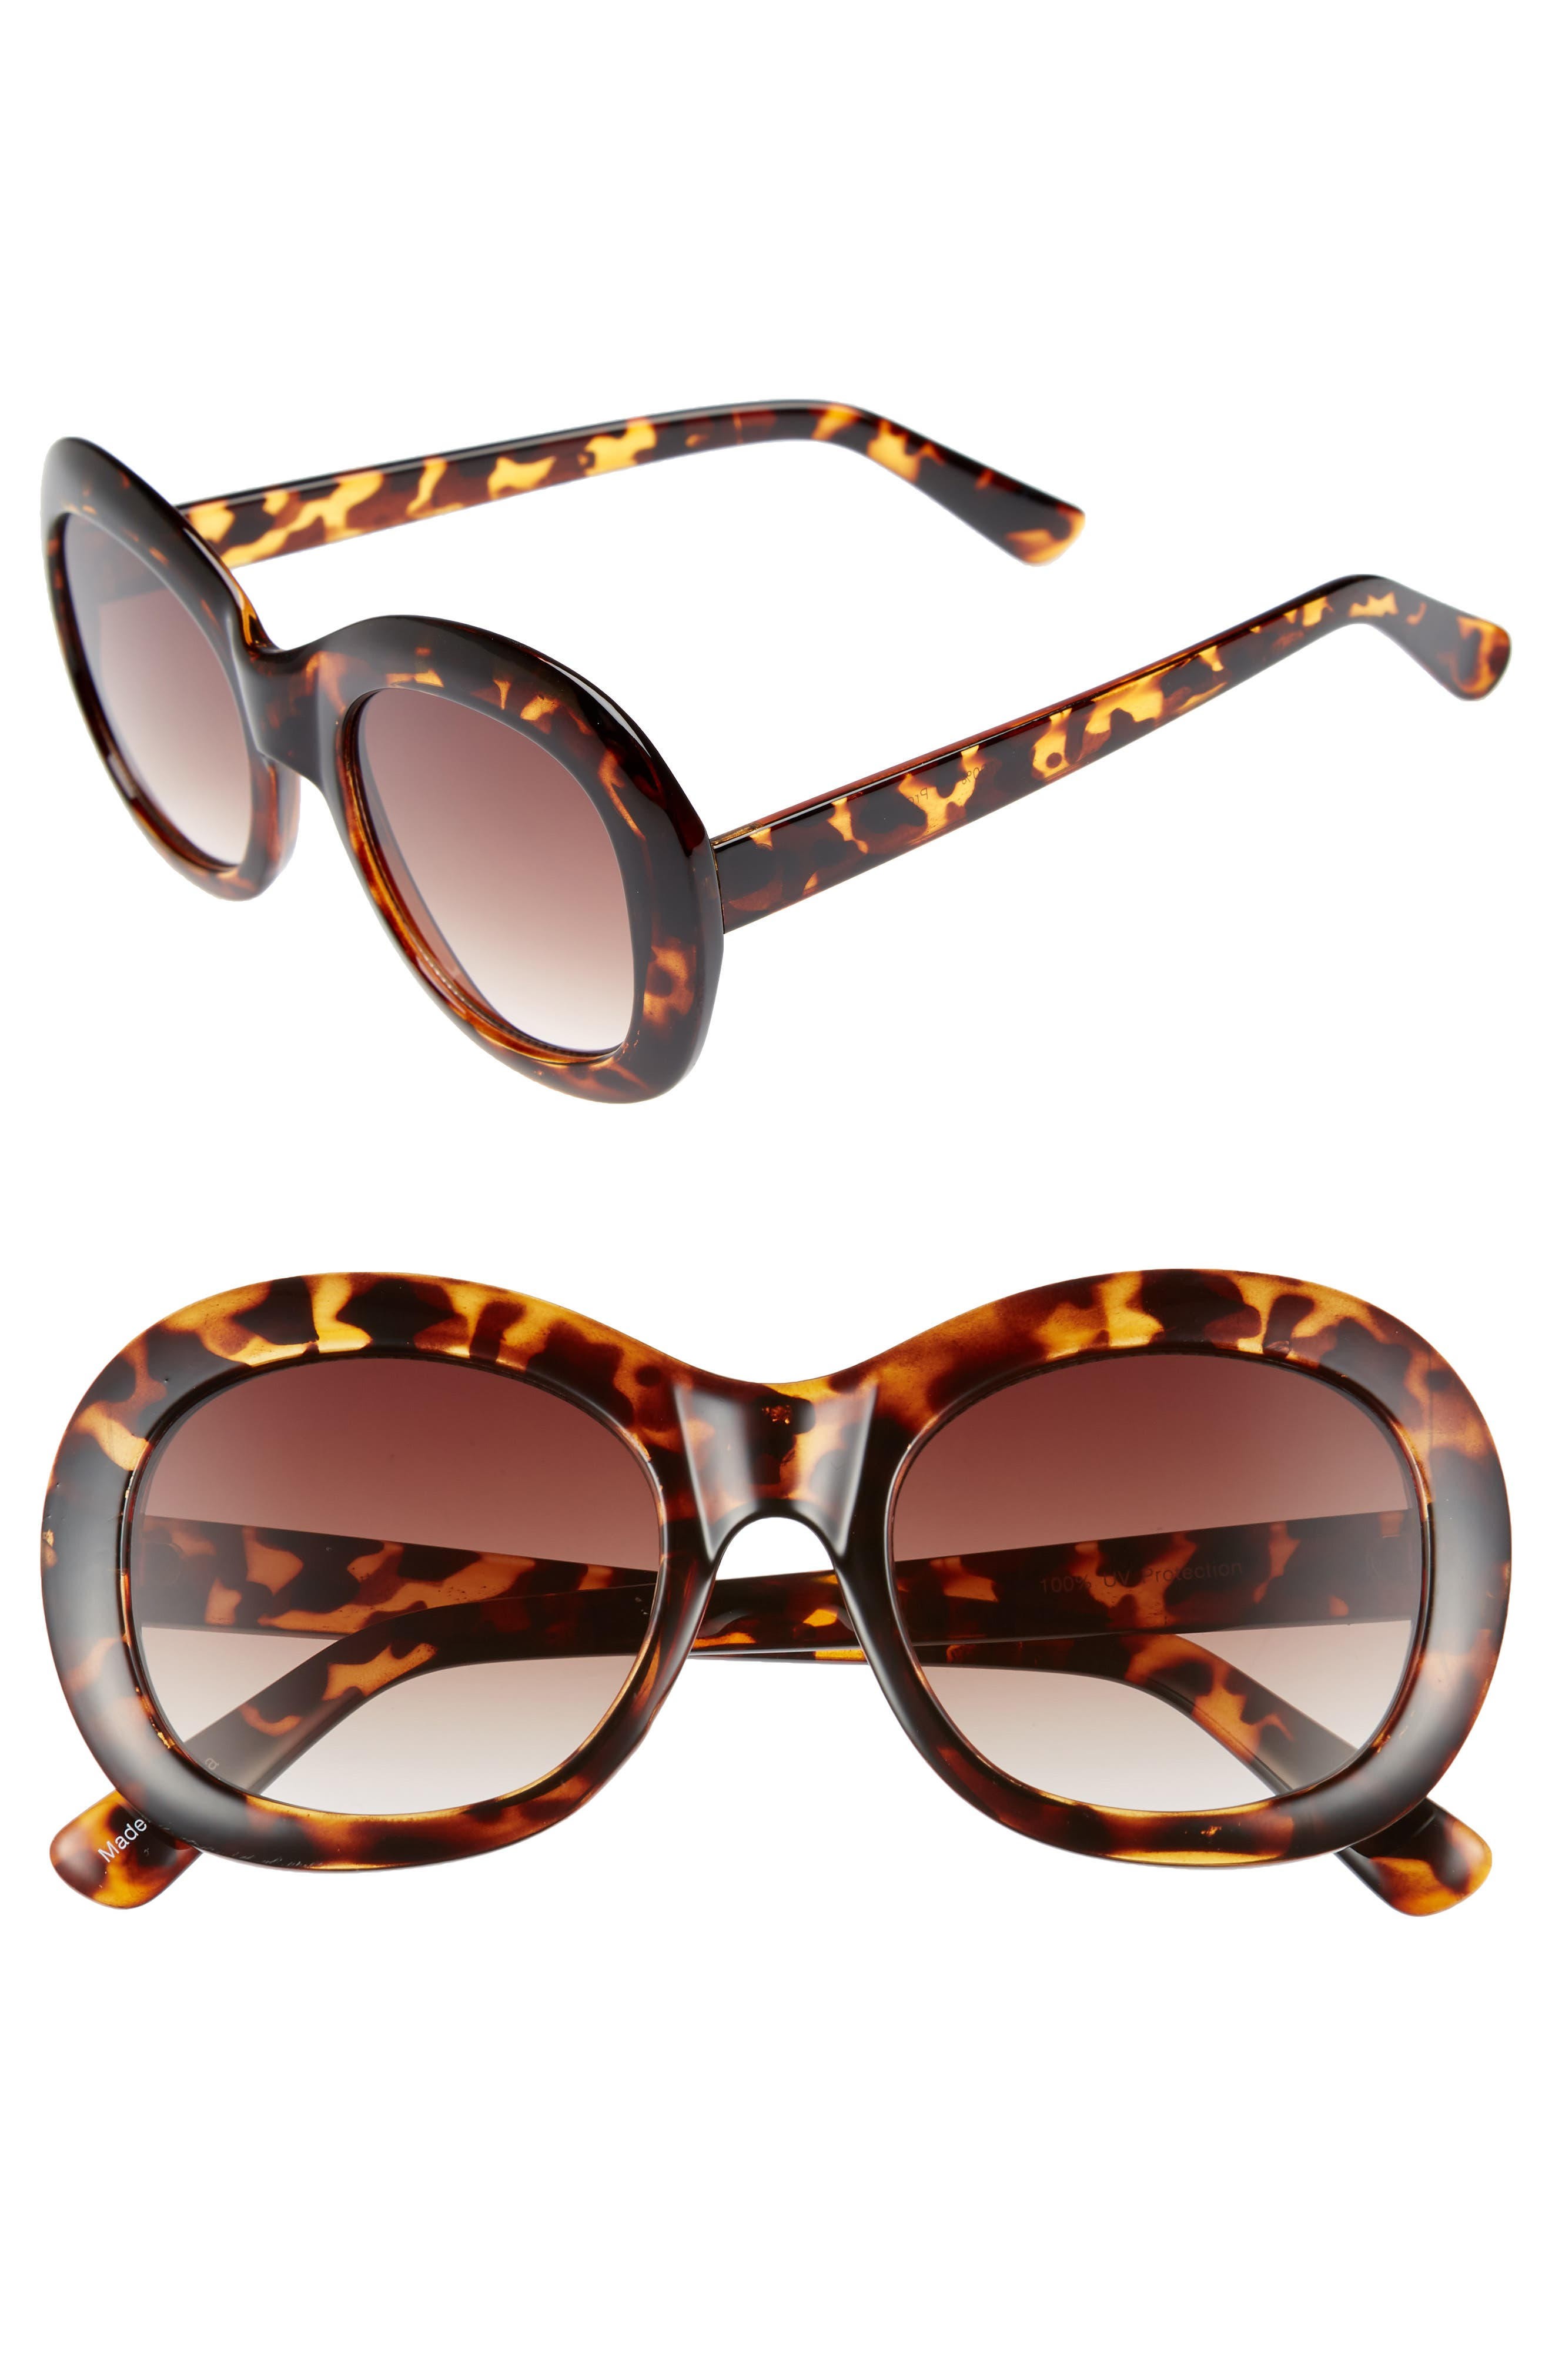 60mm Small Oval Sunglasses,                         Main,                         color, 200